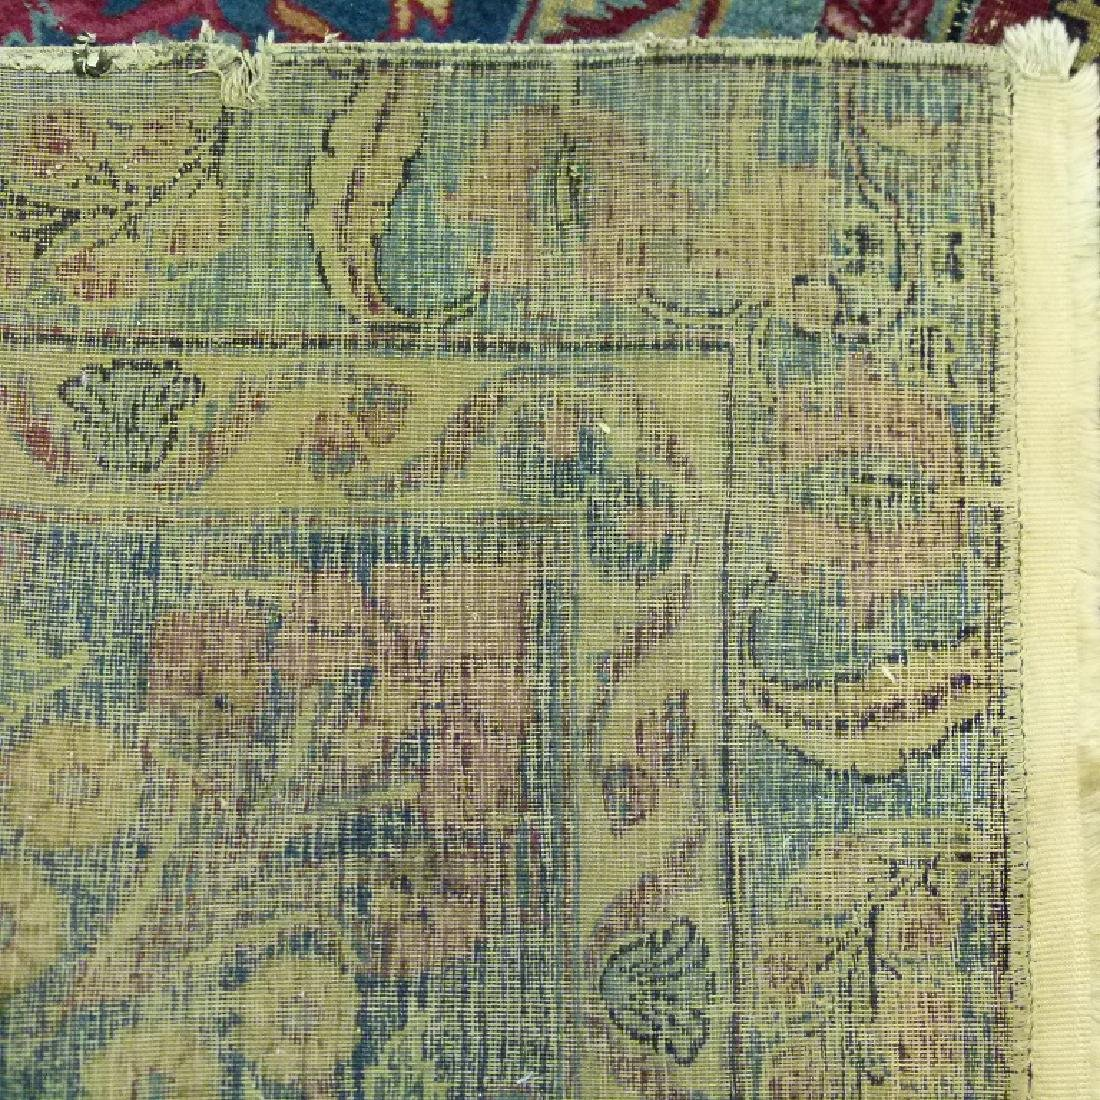 ANTIQUE SAROUK ORIENTAL CARPET (RE-SIZED) - 5